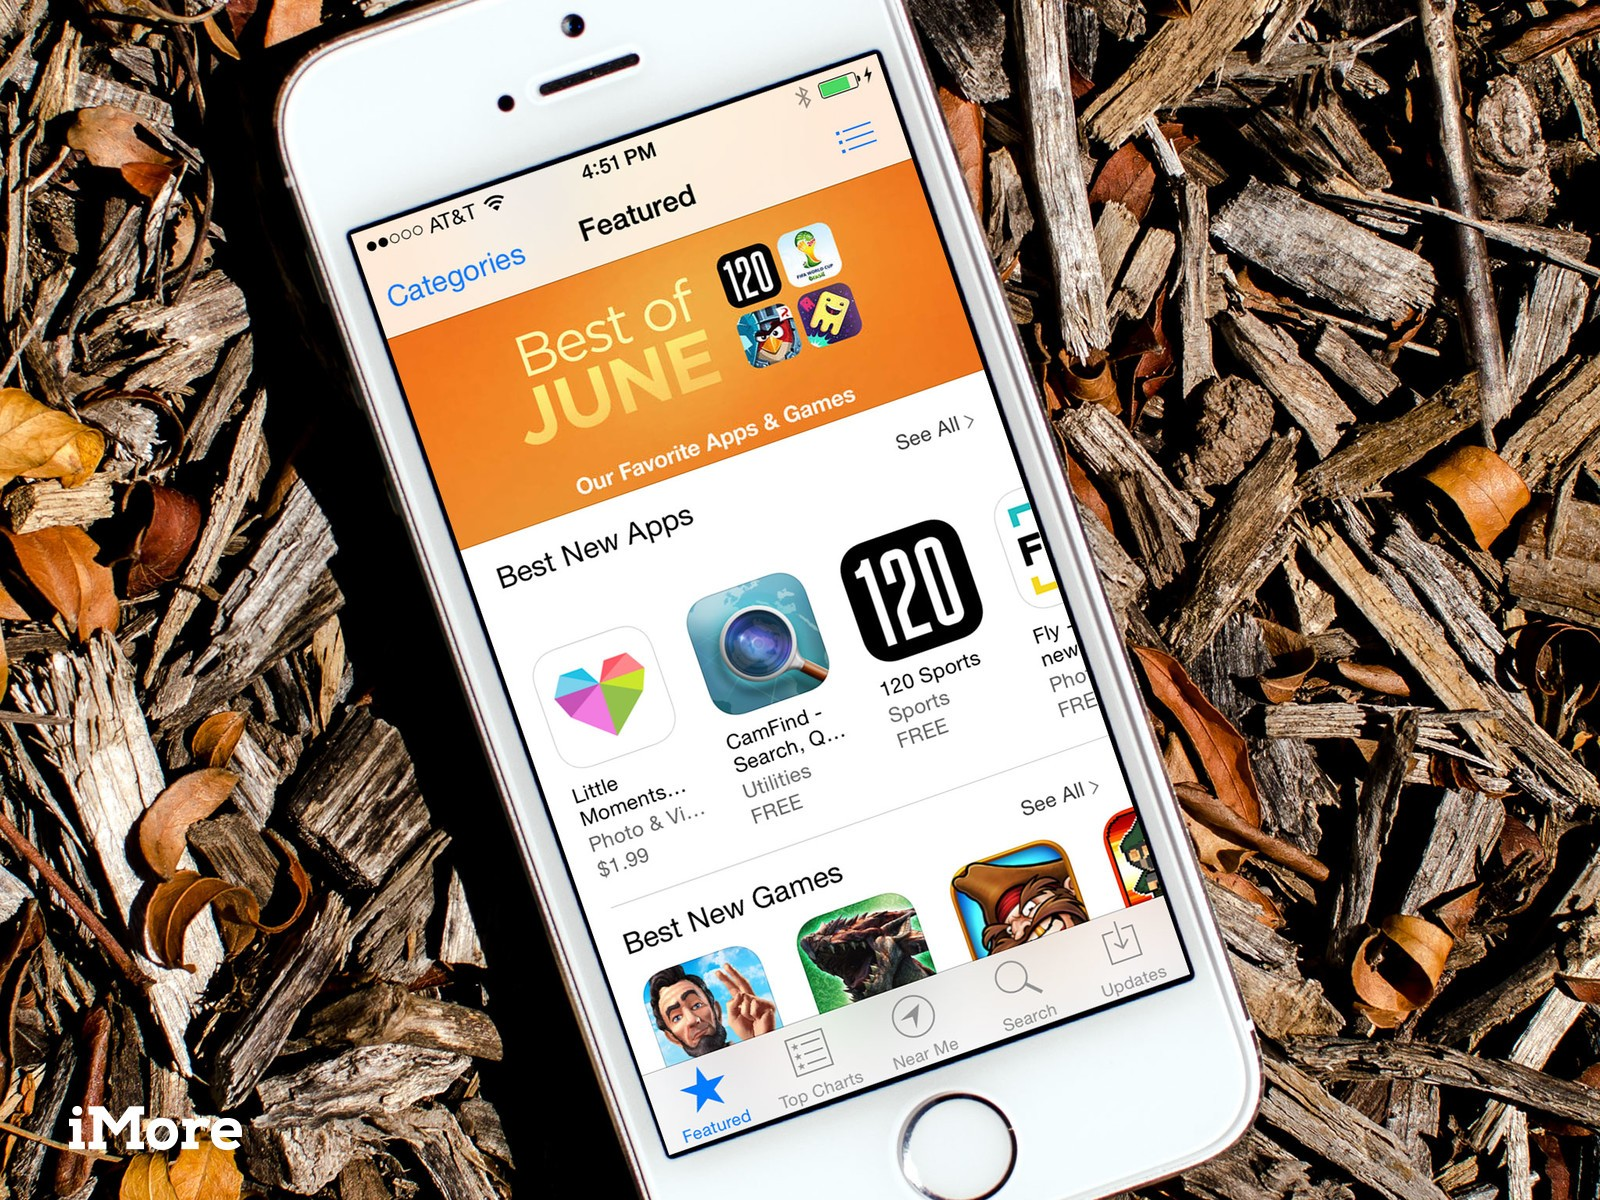 How to change what iTunes account is linked to your iPhone or iPad